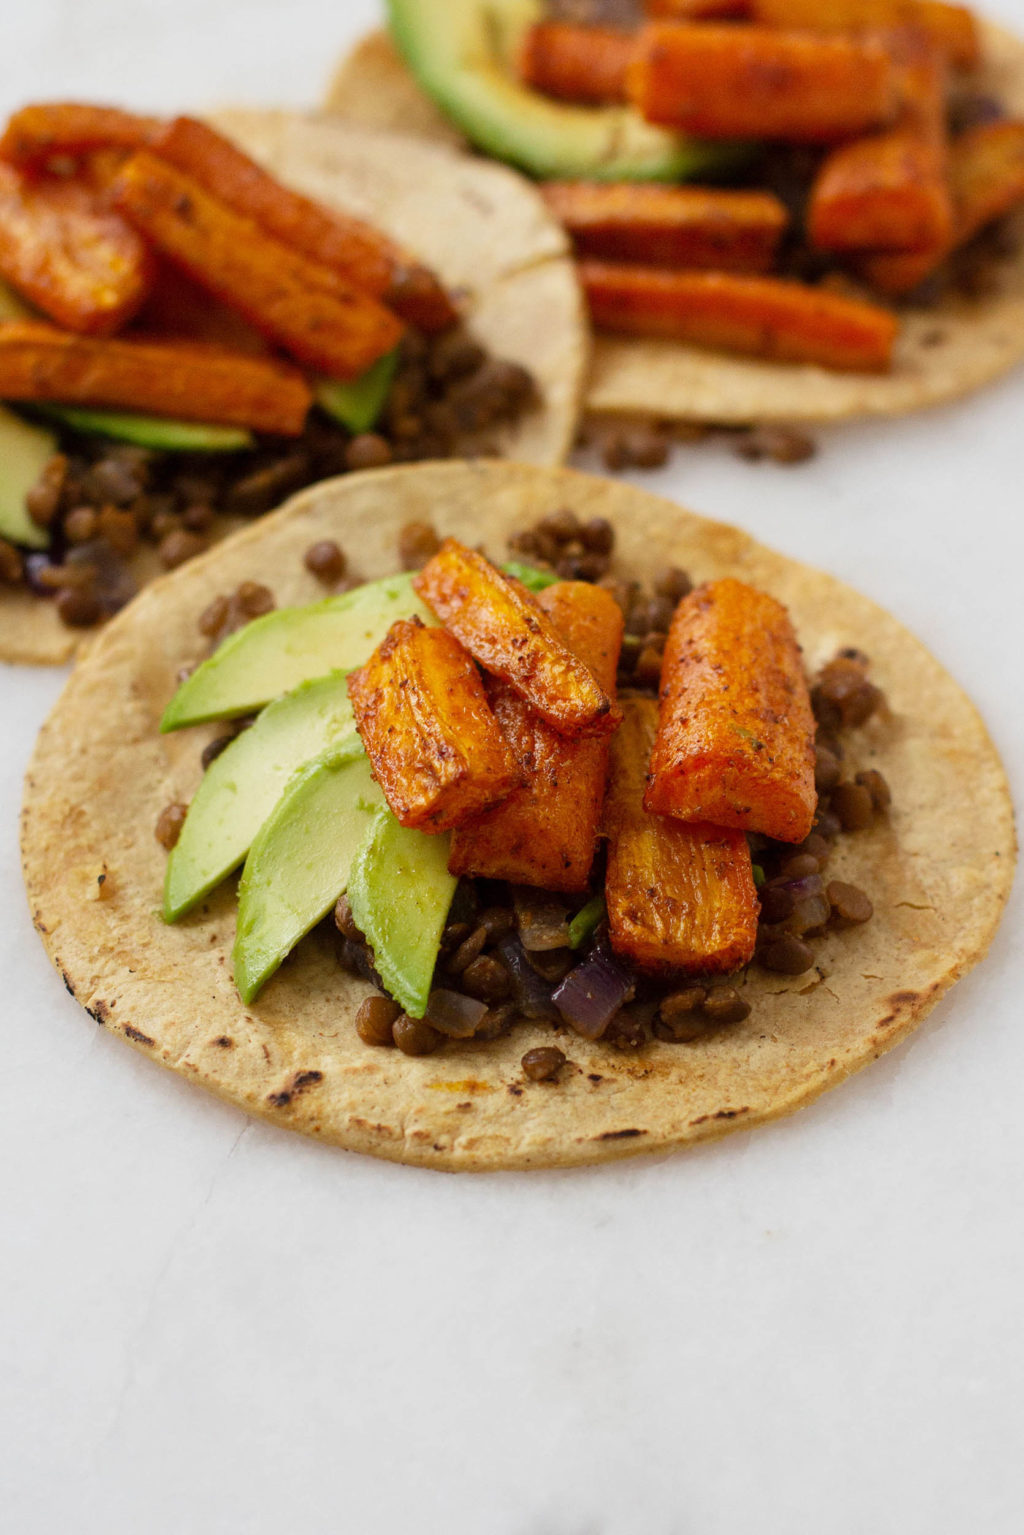 Three vegan tacos, each filled with roasted carrots, a spiced lentil and onion mixture, and avocado slices.